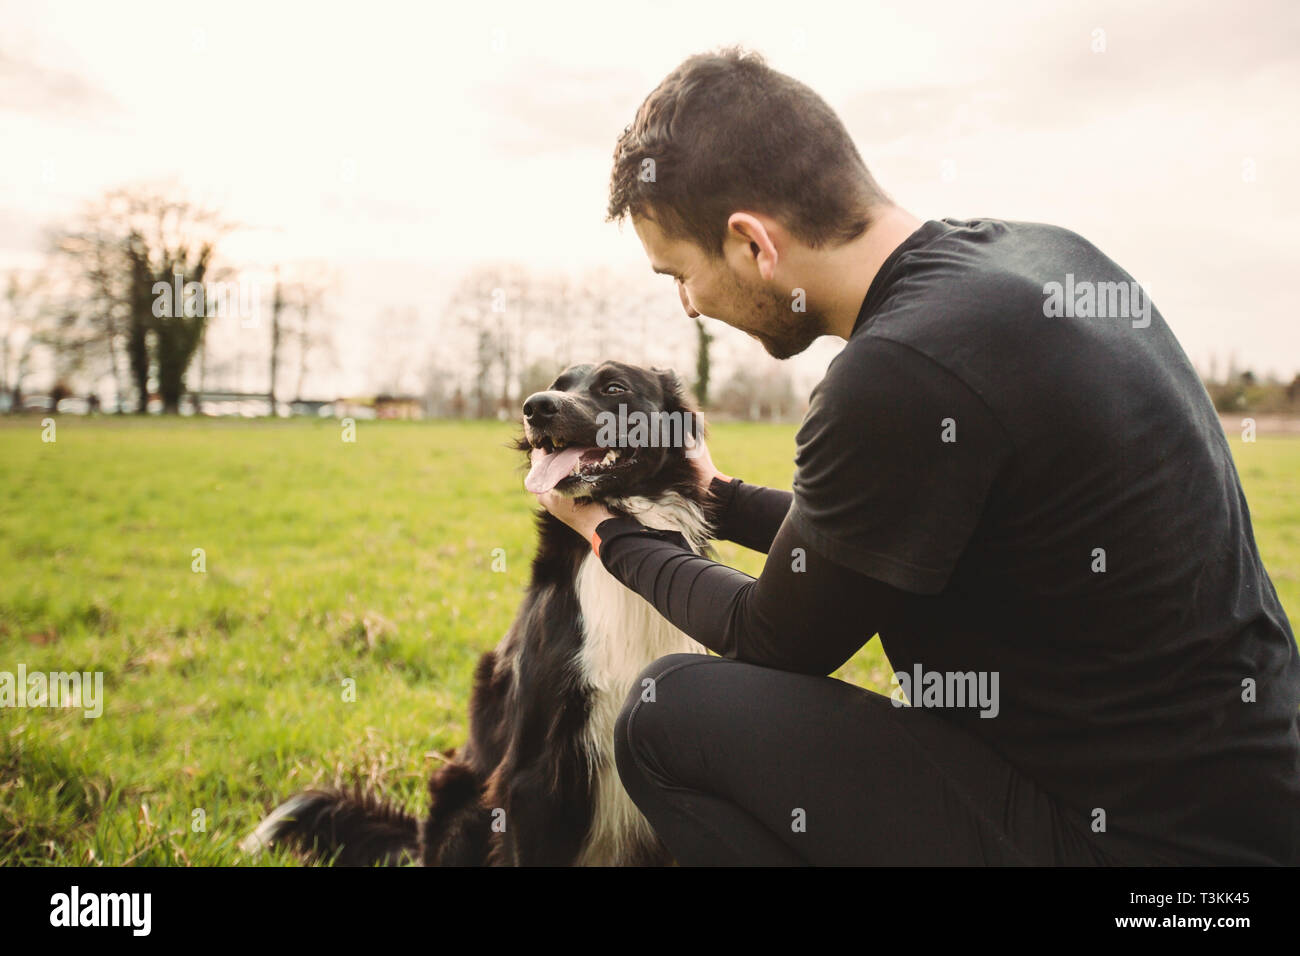 Man dog playing outdoor in the park. Young owner hugs his pet. Friendship between owner and dog. Animal love concept. Stock Photo